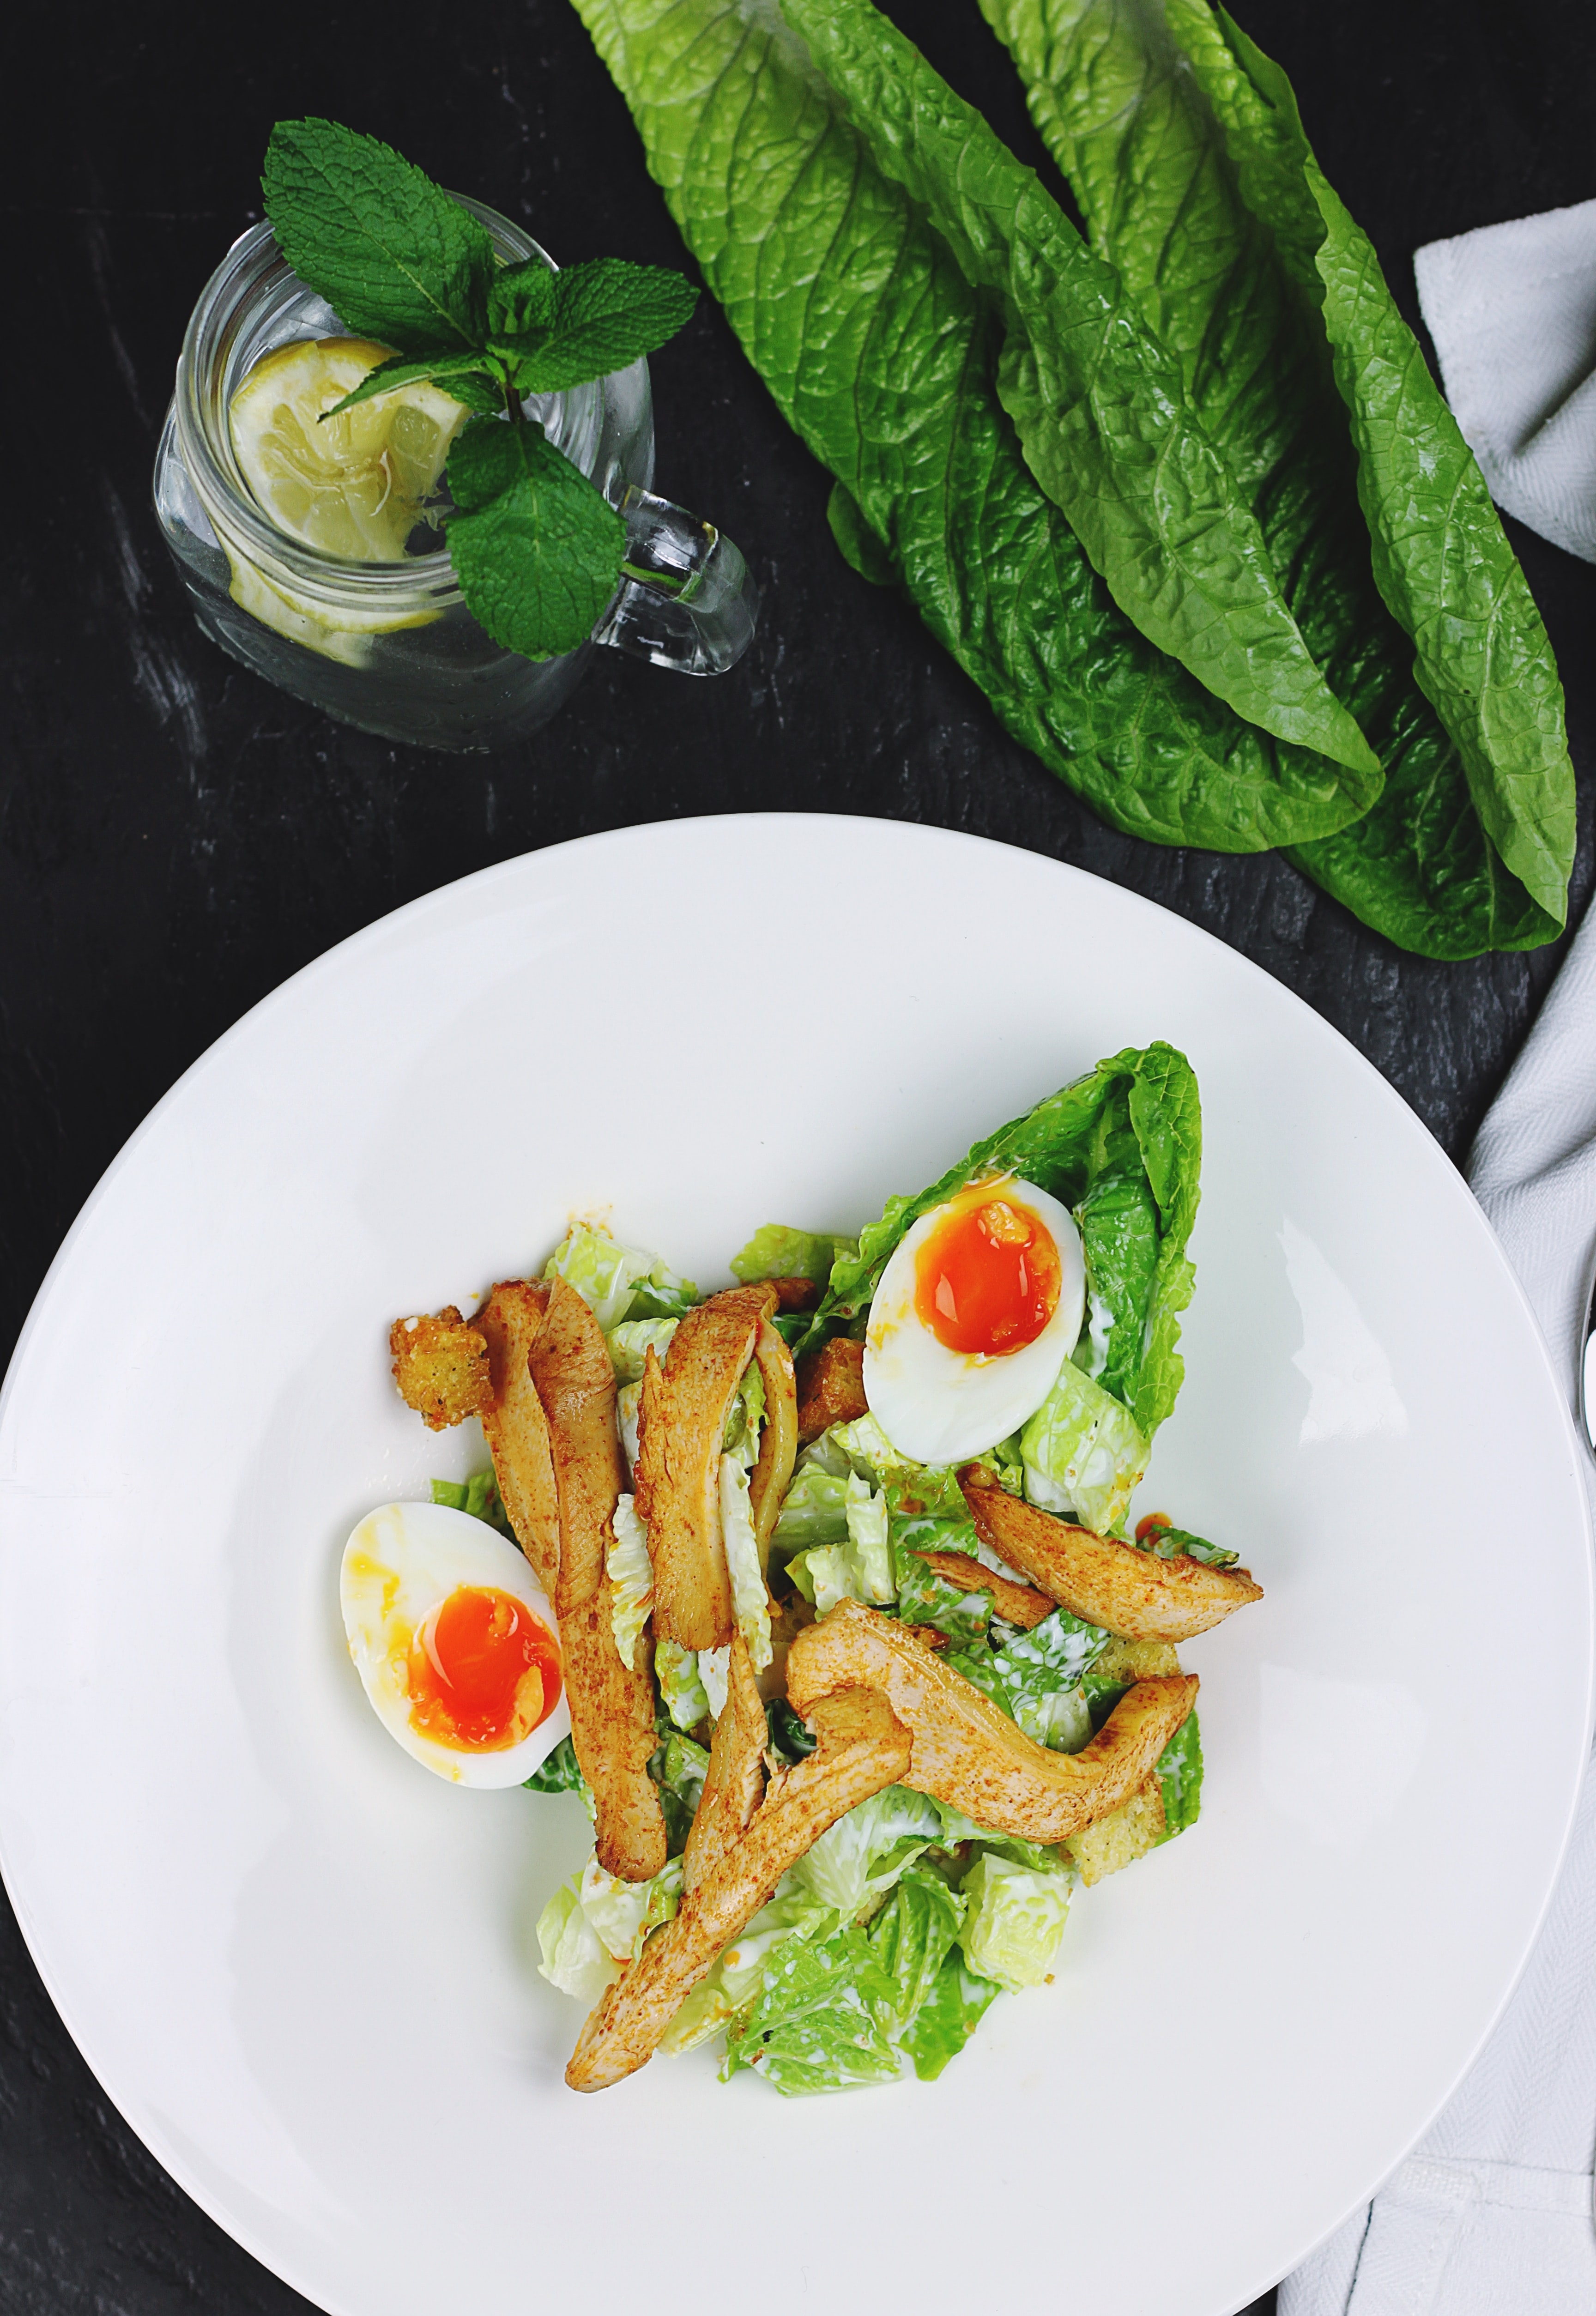 Salad with sauteed chicken, soft boiled eggs, and lettuce